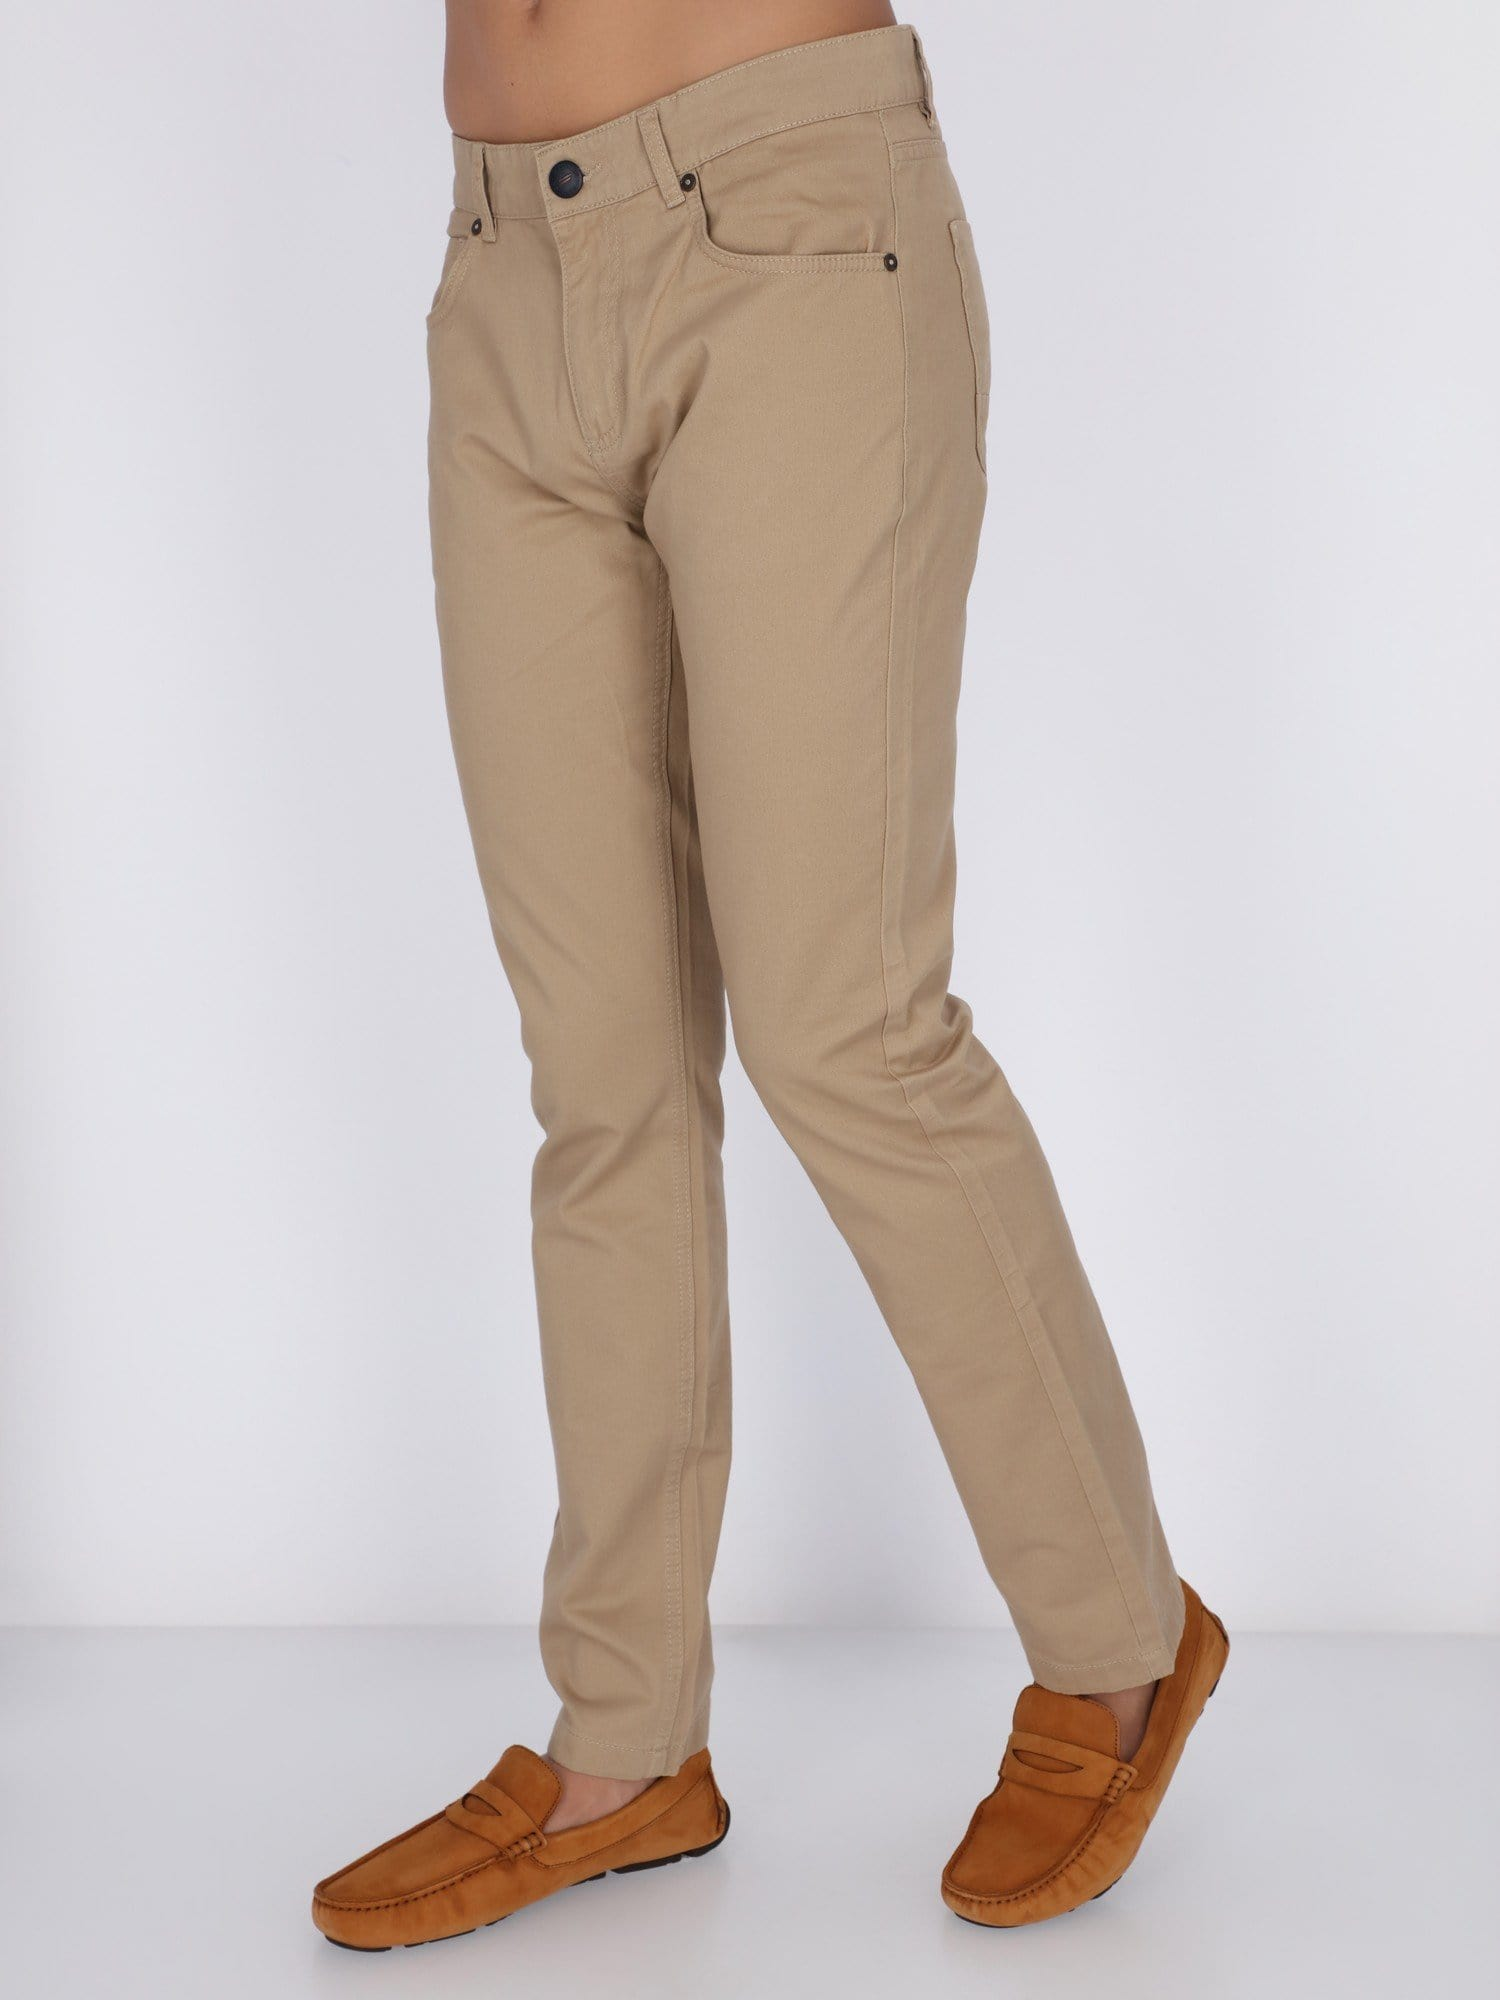 Daniel Hechter Pants & Shorts Beige / 38 Basic Chino Pants